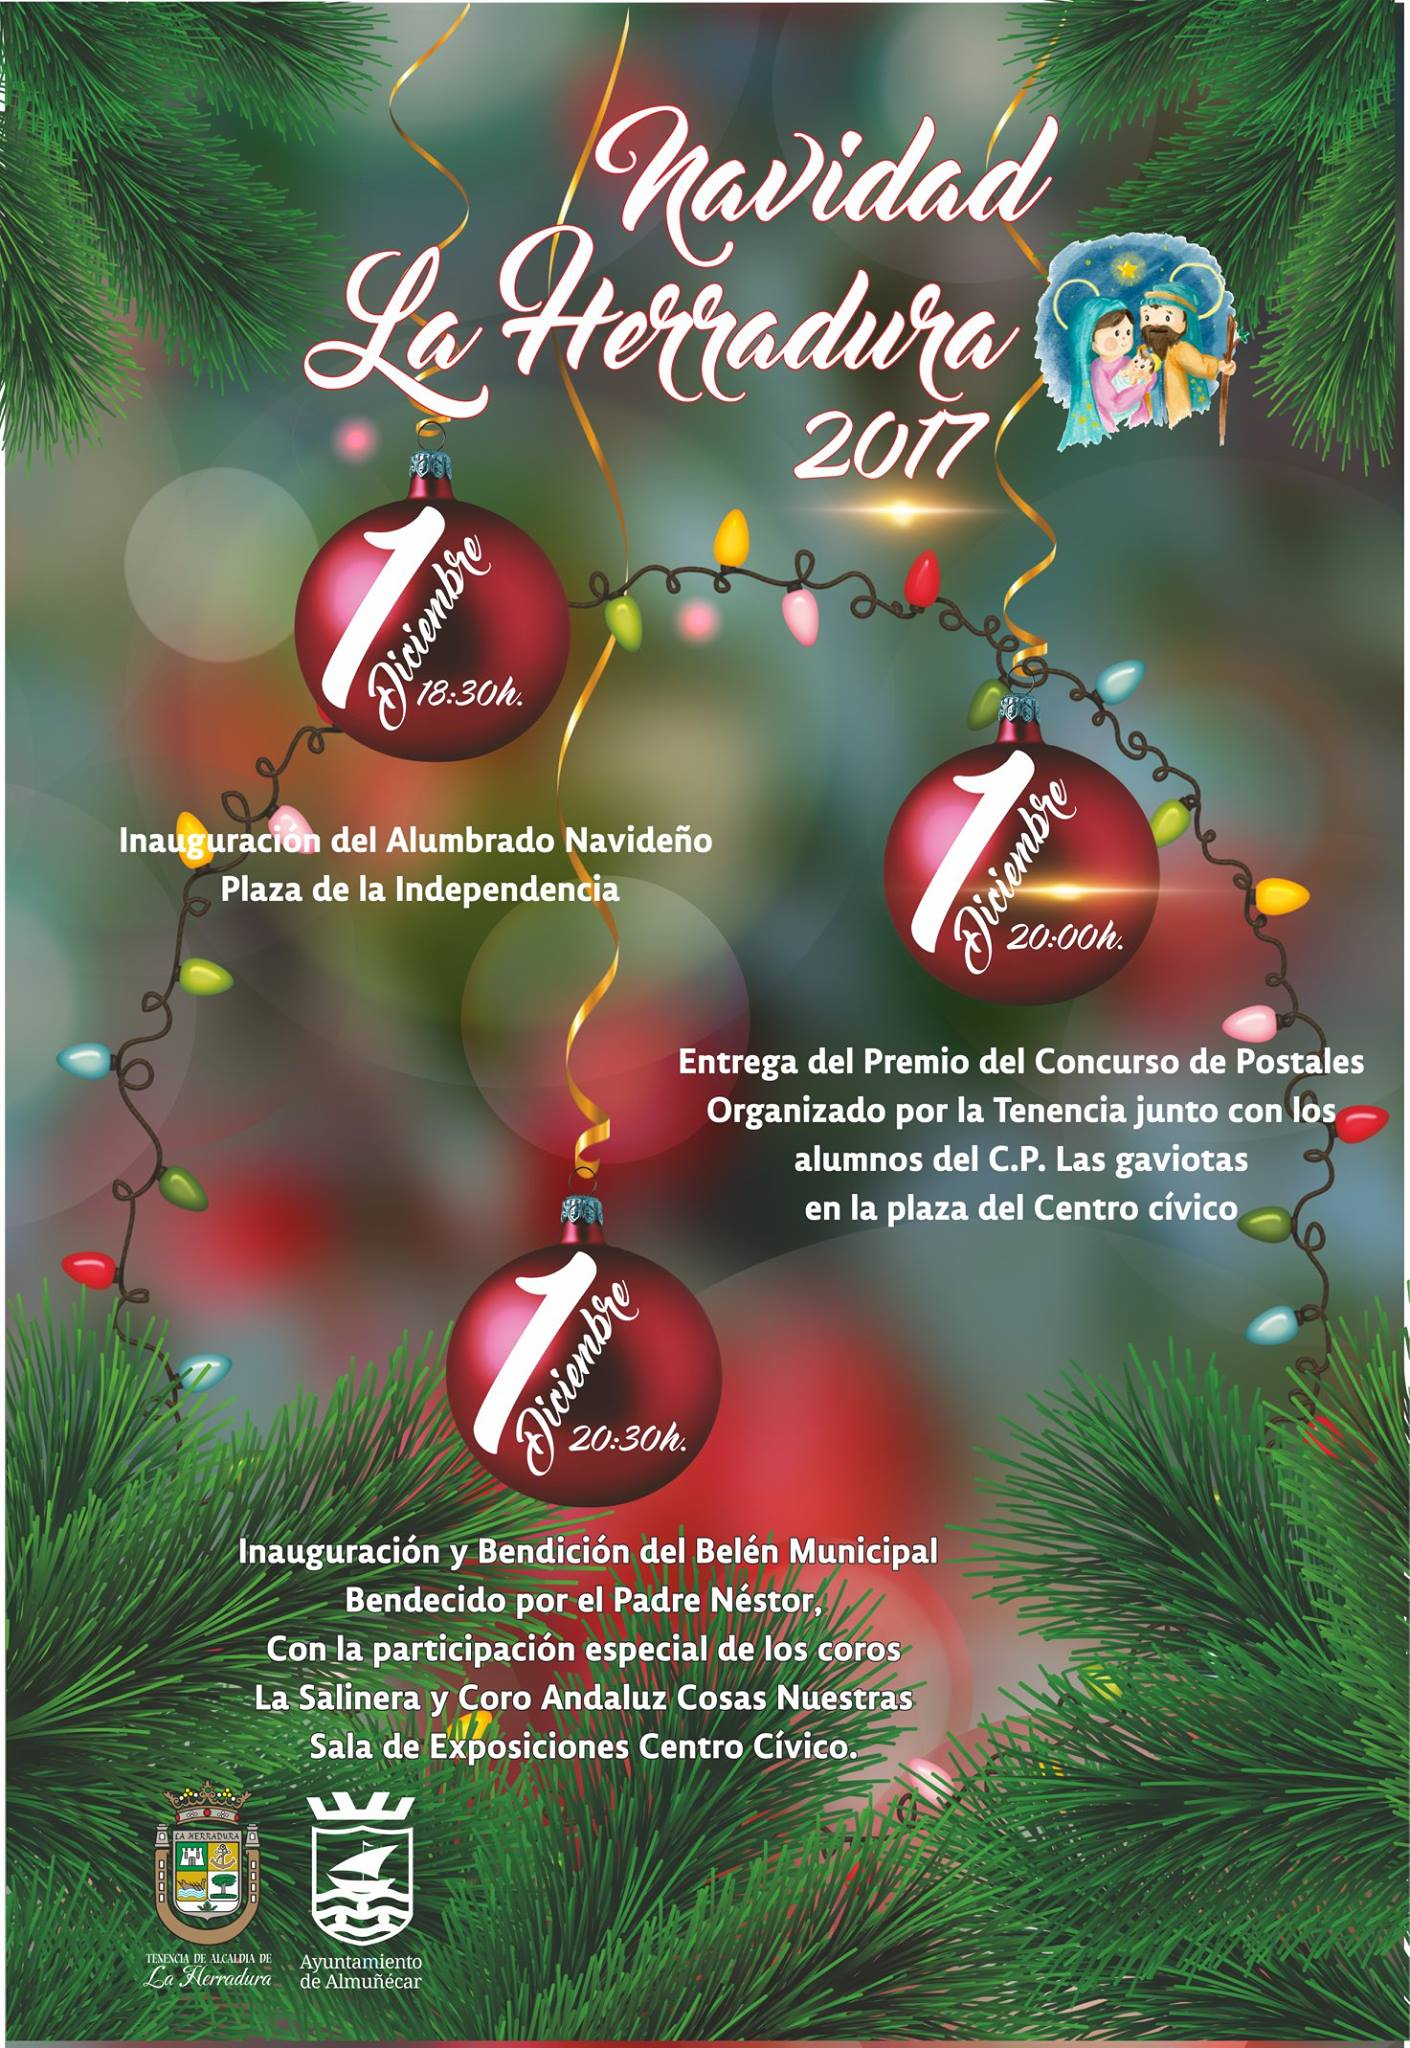 We have compiled a list of things to do for 2017 Christmas in Almuñécar & La Herradura. Including events for January and Los Tres Reyes (The 3 Kings). 2017 holiday season Almuñécar & La Herradura. Read more on Almunecarinfo.com